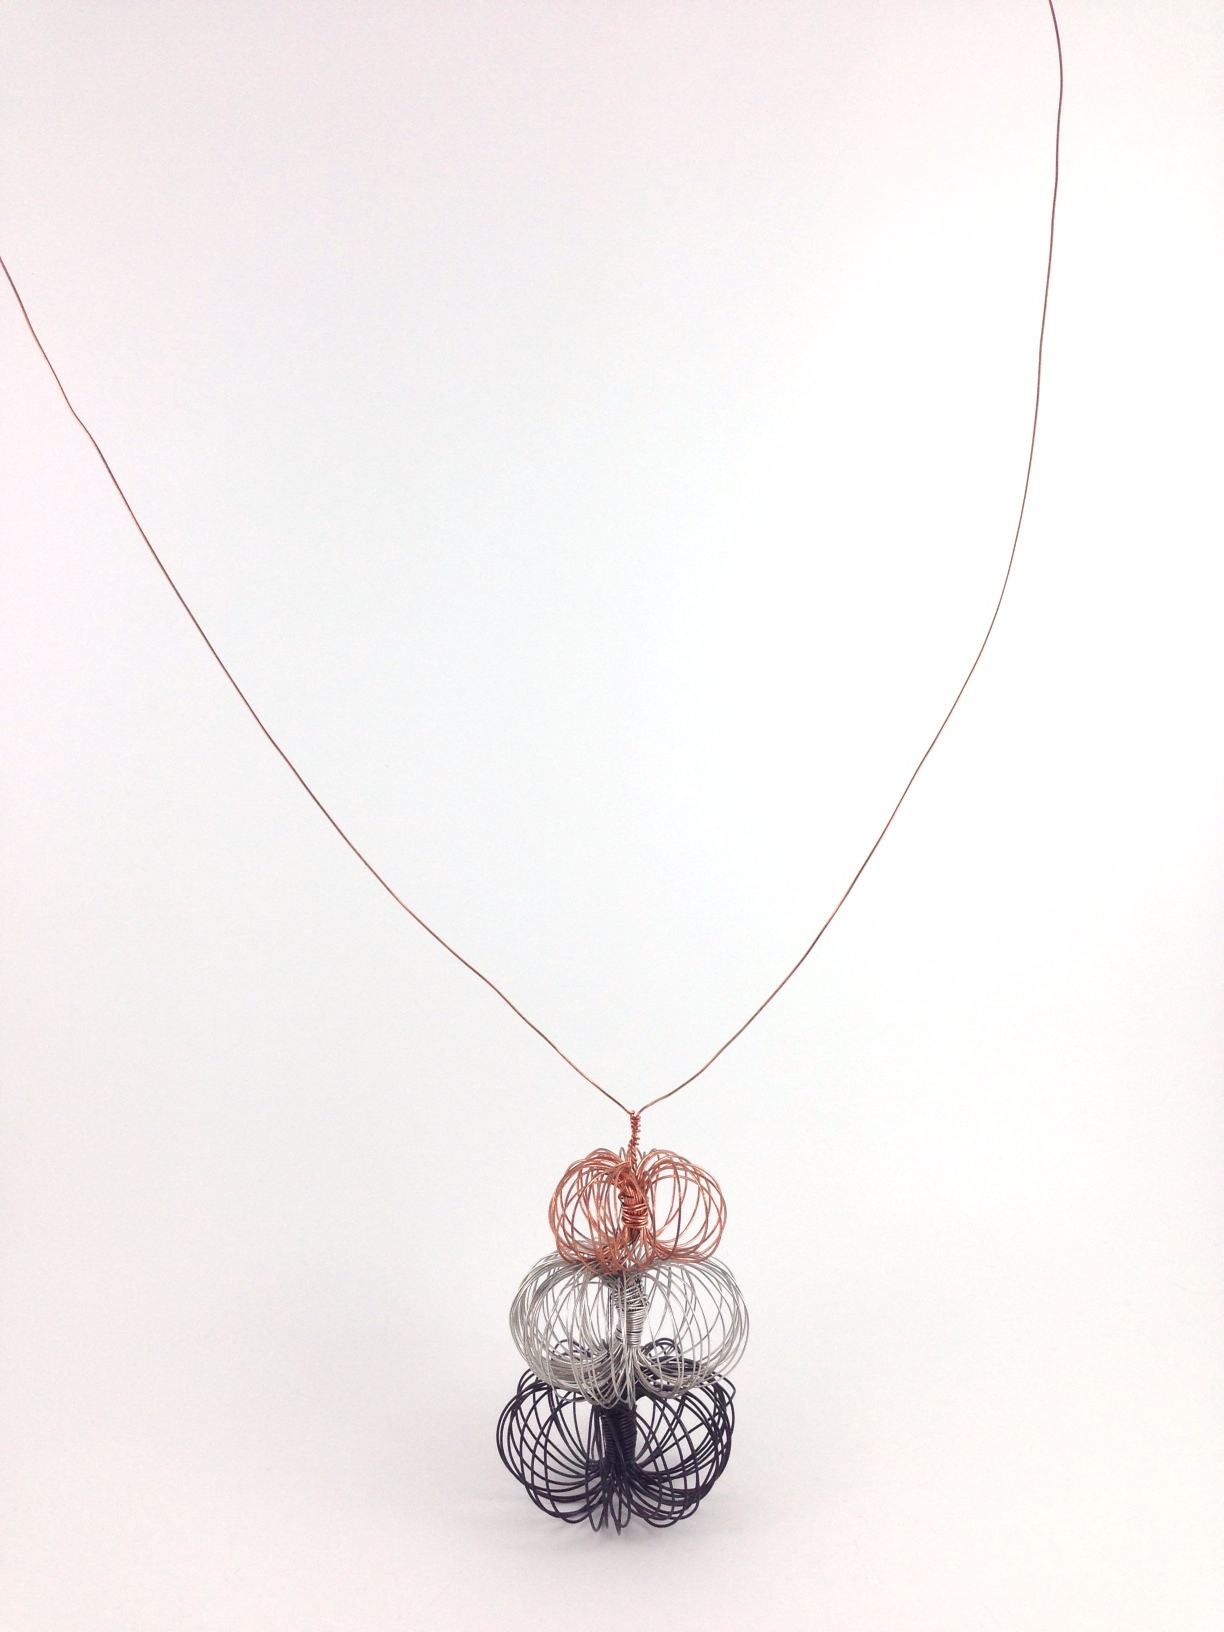 Stacked Wheels Necklace.JPG